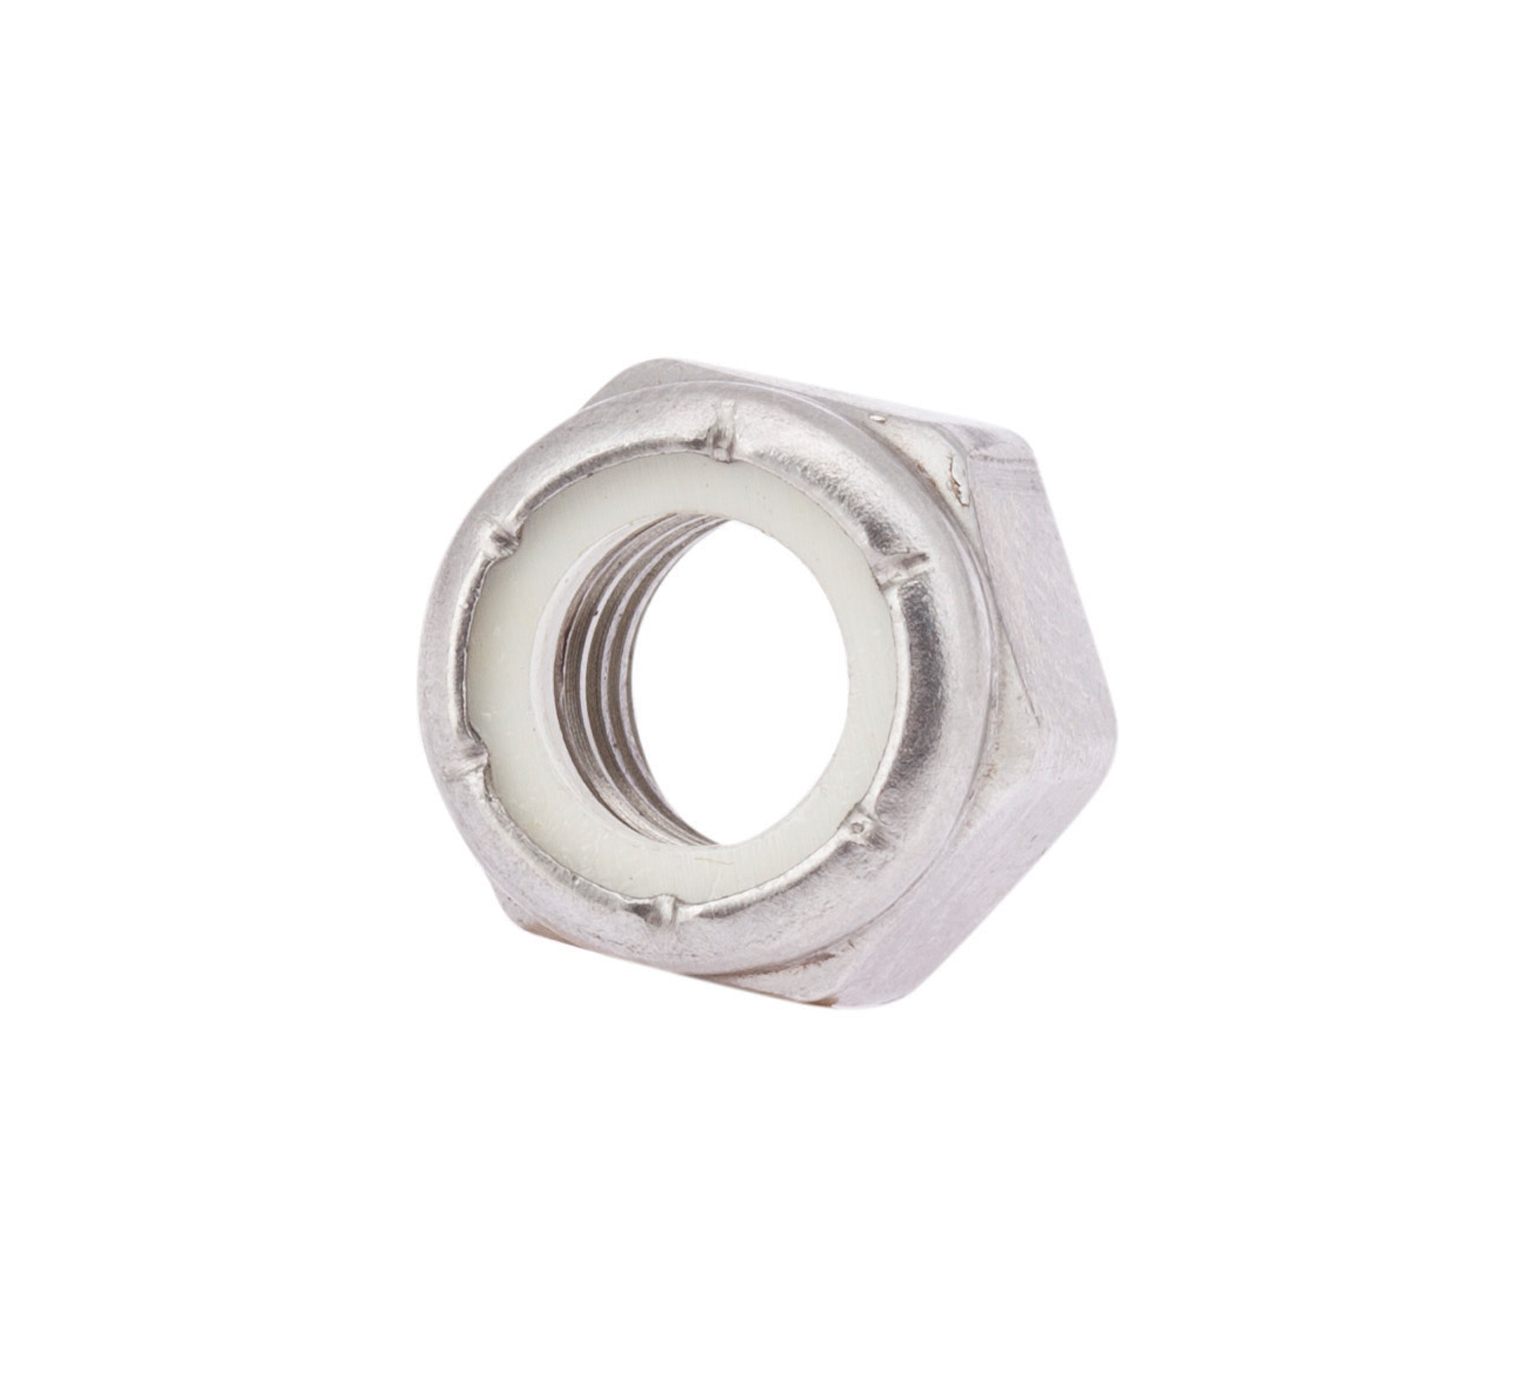 59156 Stainless Steel Hex Lock Nut - 0.564 x 0.468 in alt 1